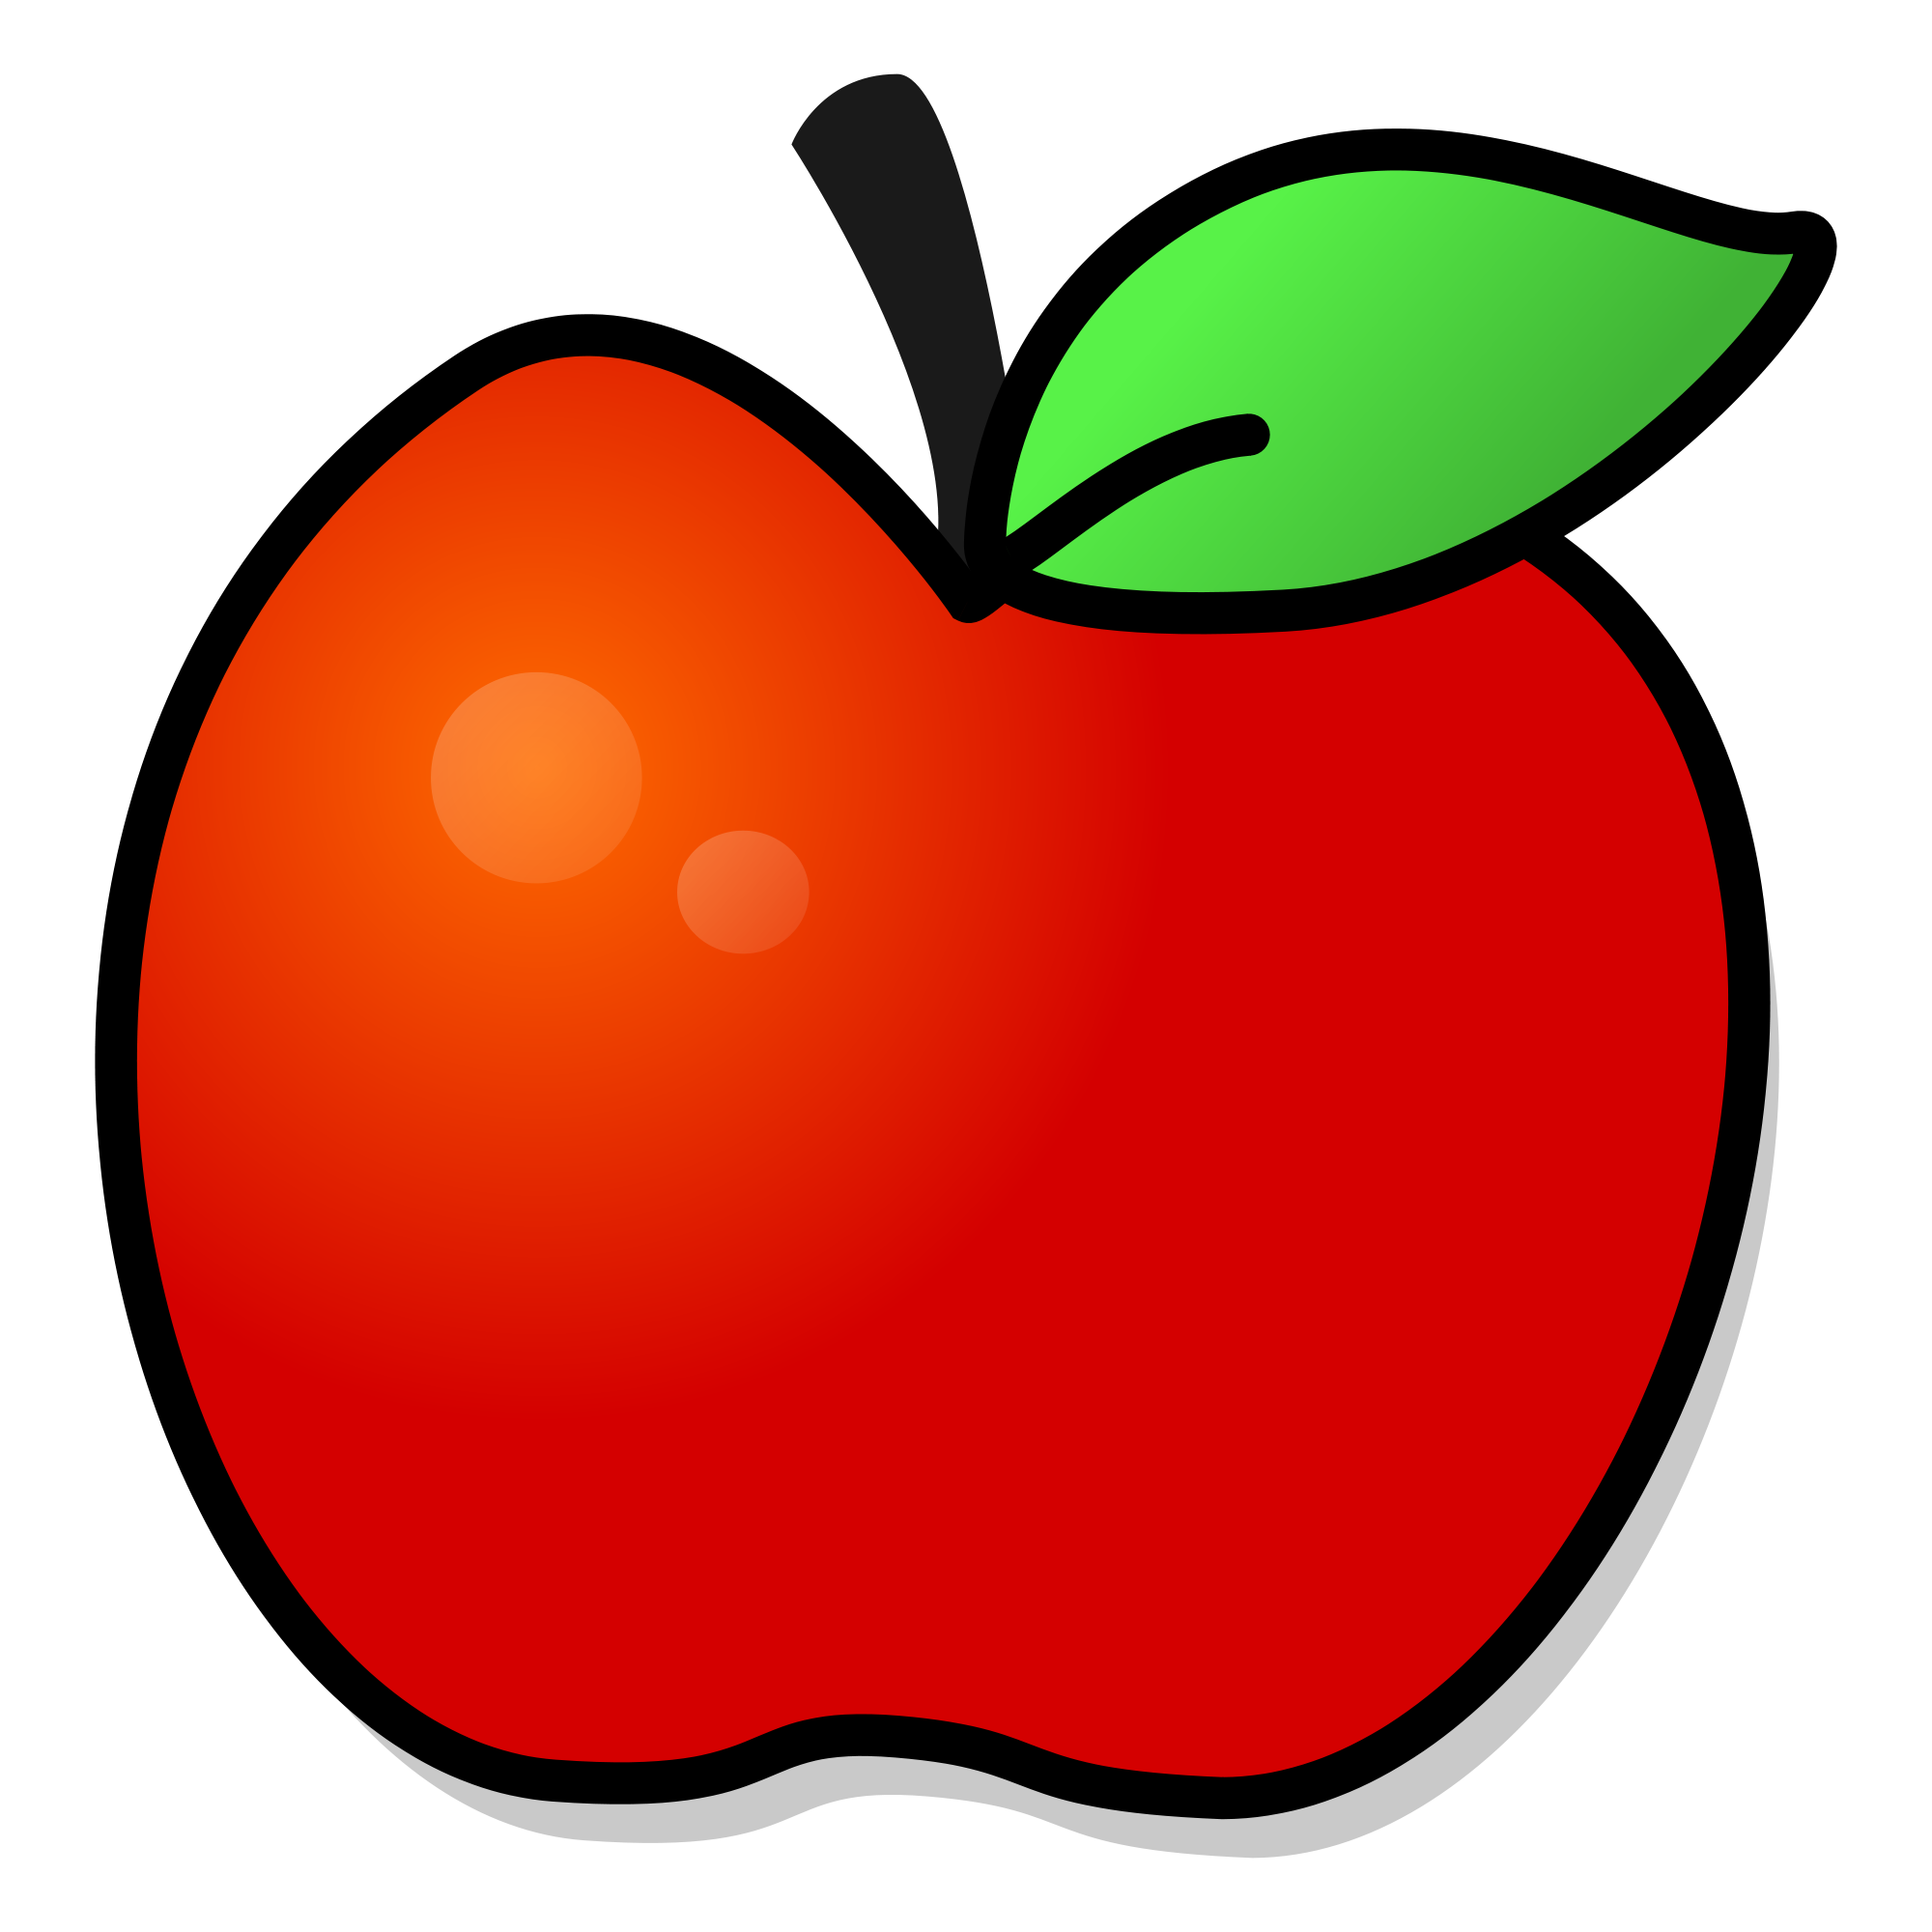 Free clipart of red apple png transparent stock File:Red apple with leaf.svg - Wikimedia Commons png transparent stock